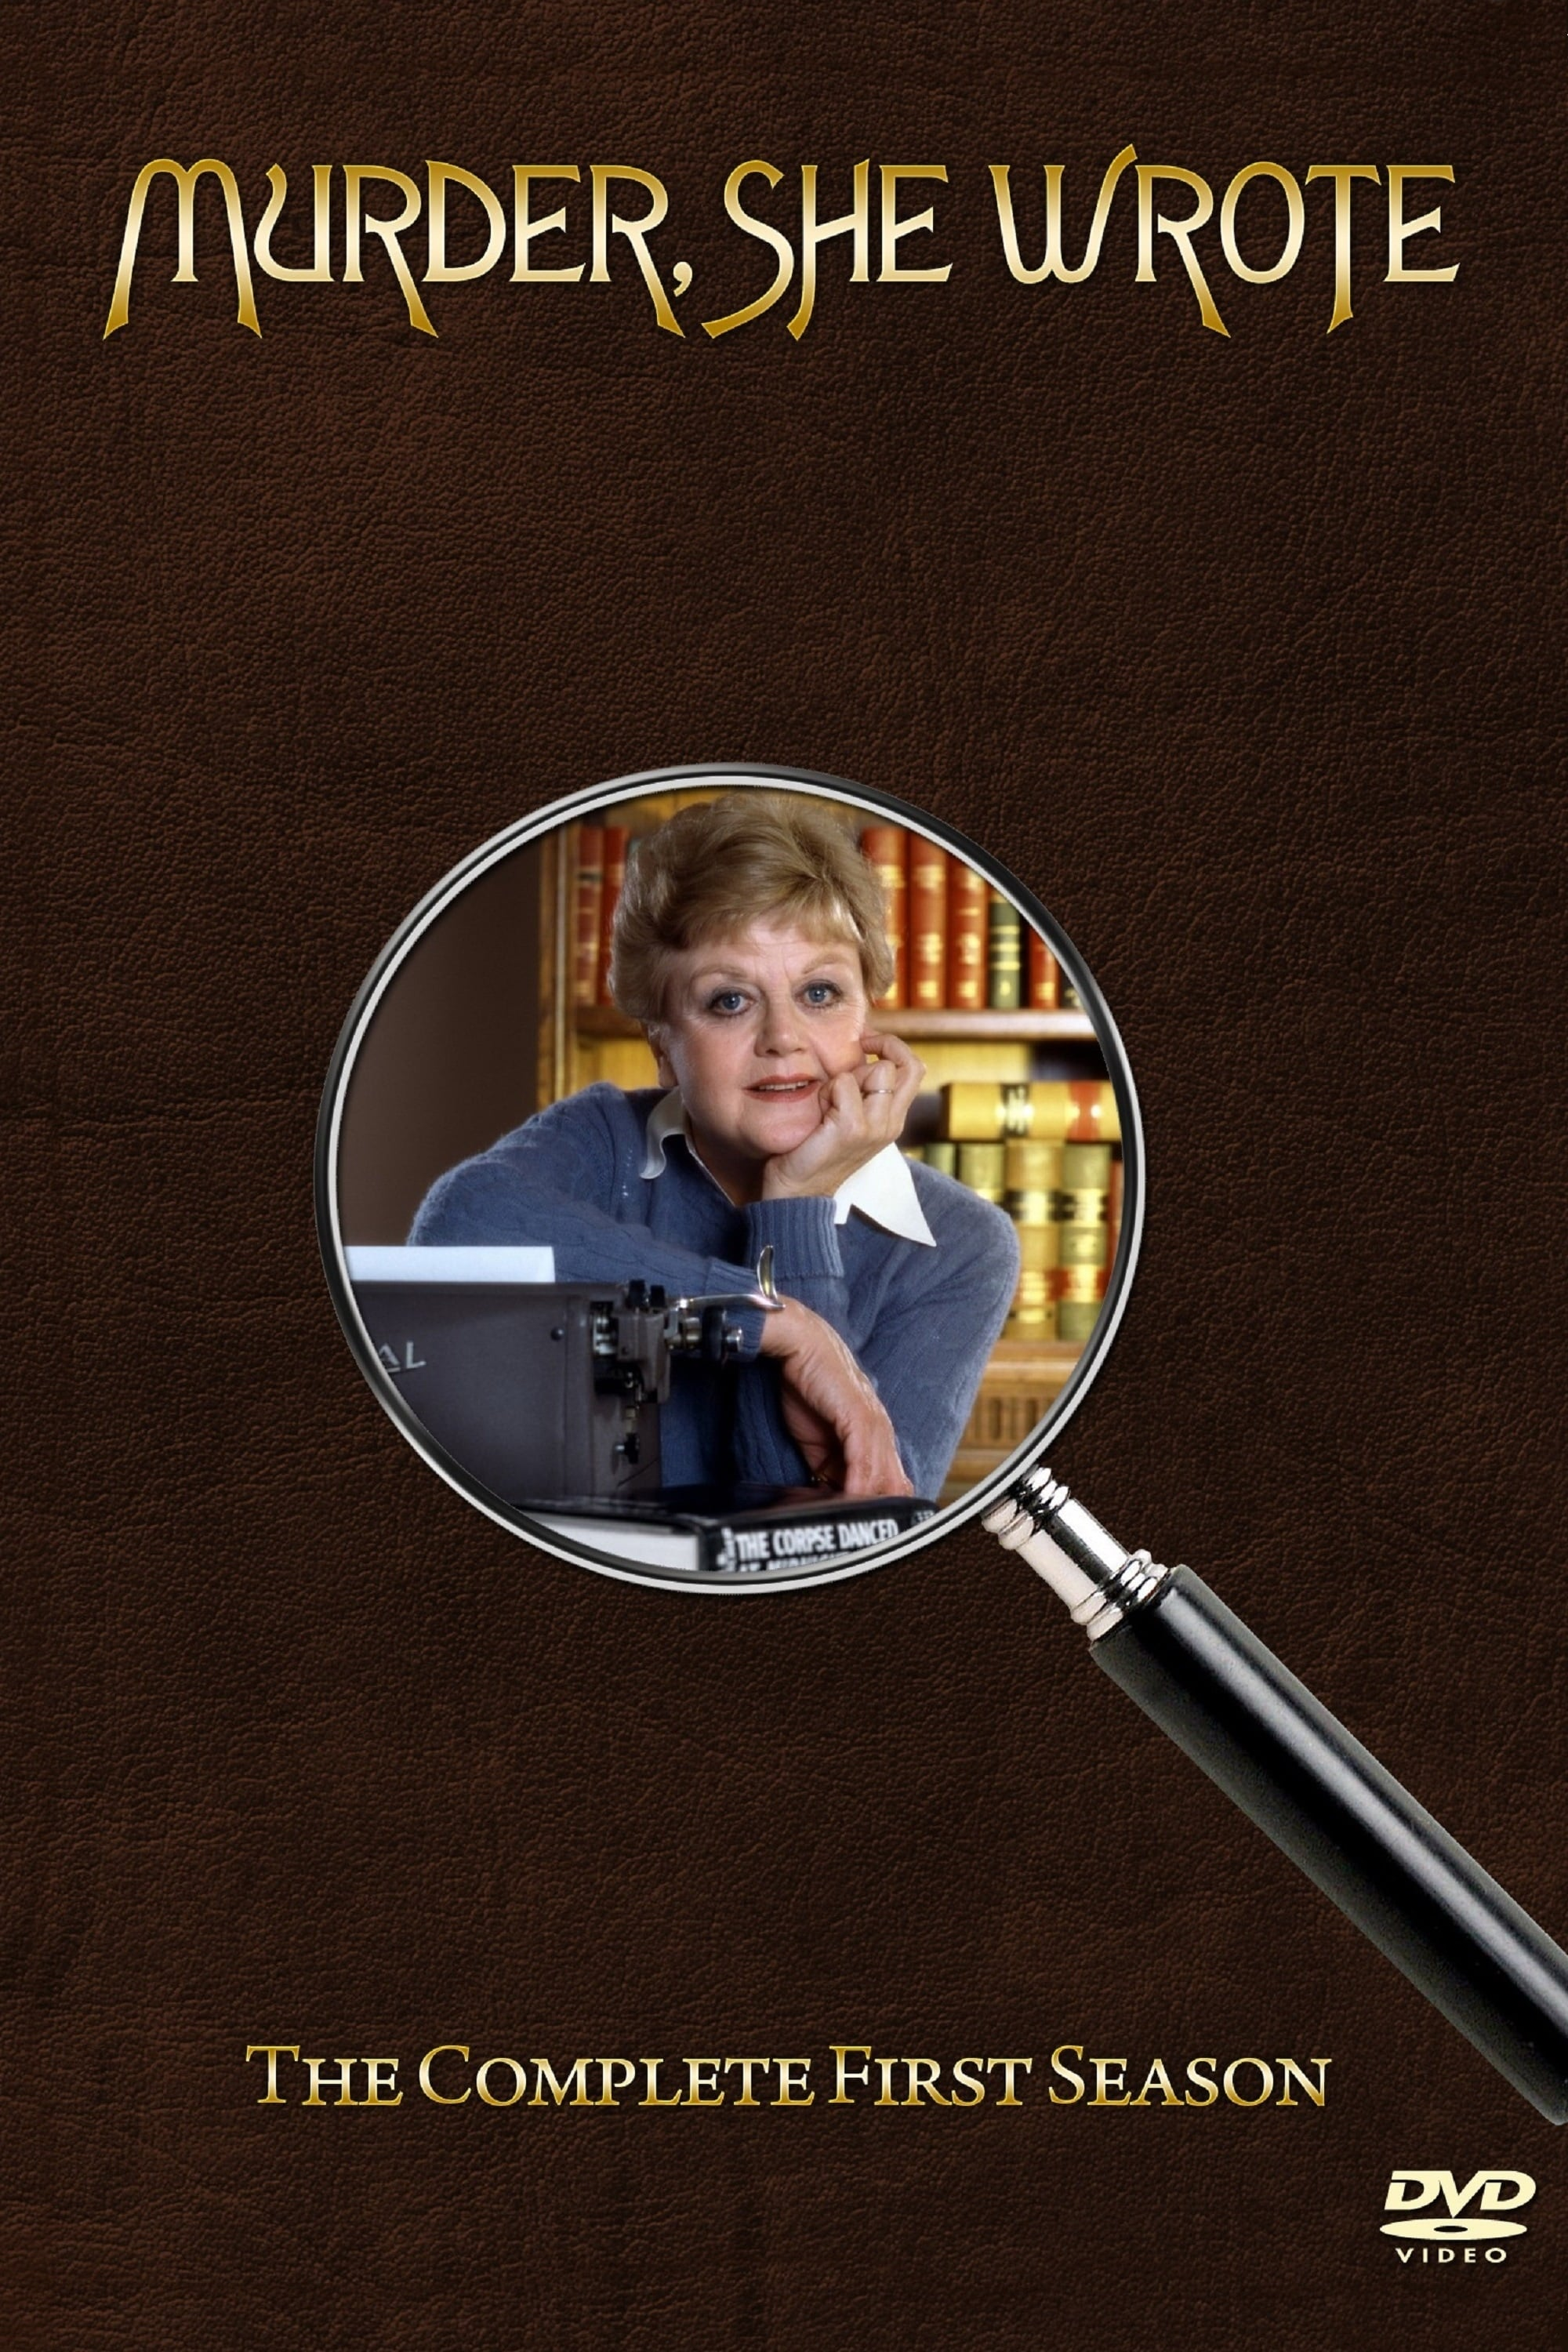 Murder, She Wrote Season 1